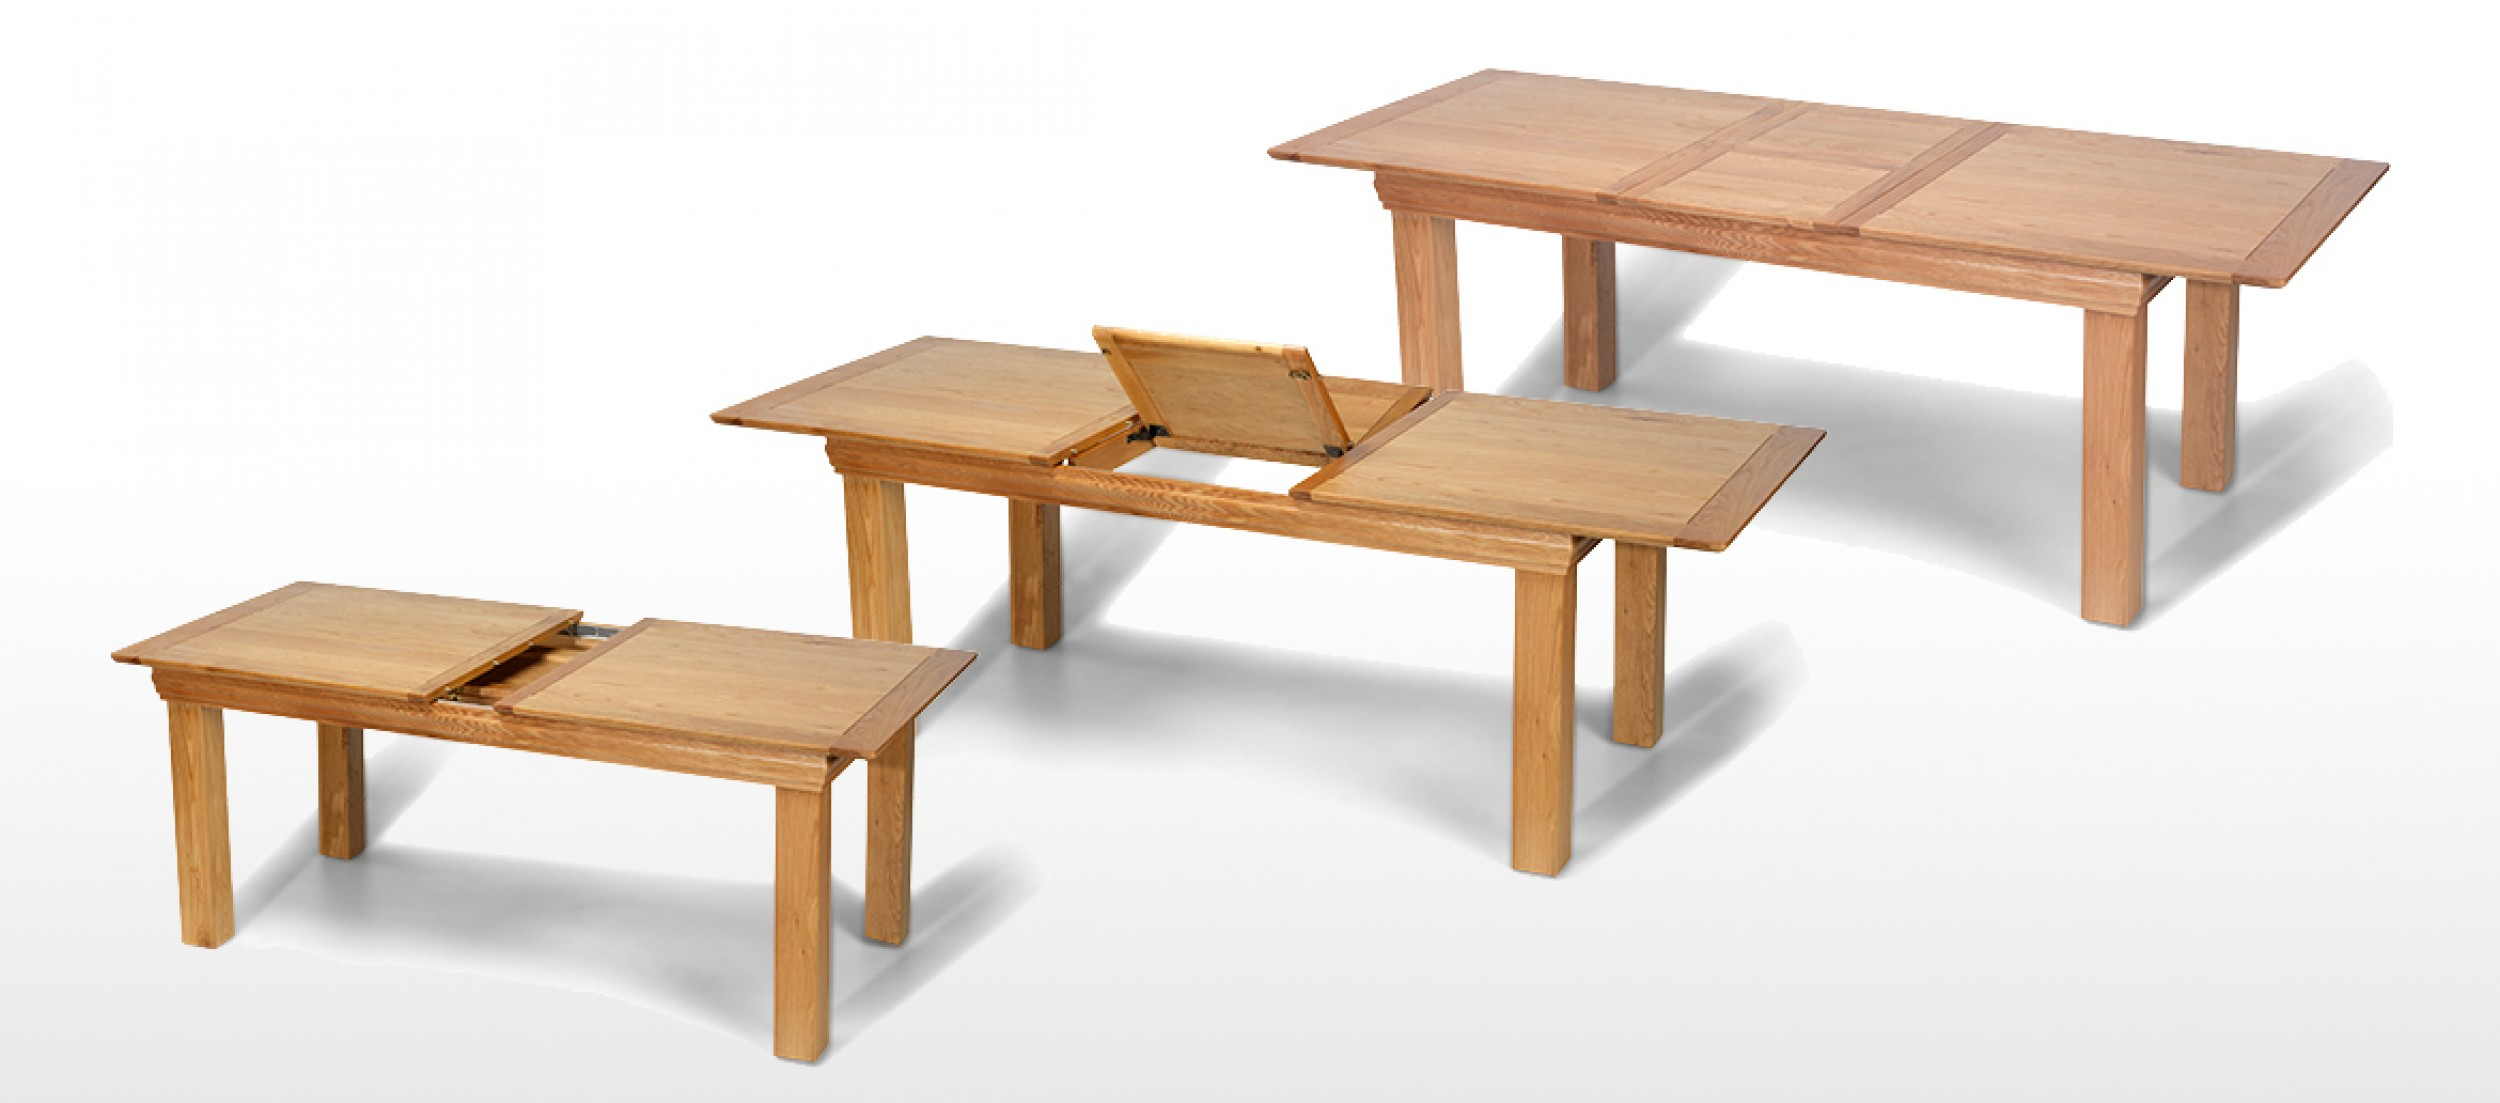 Extending Table Home And Garden Furniture High Class Quality